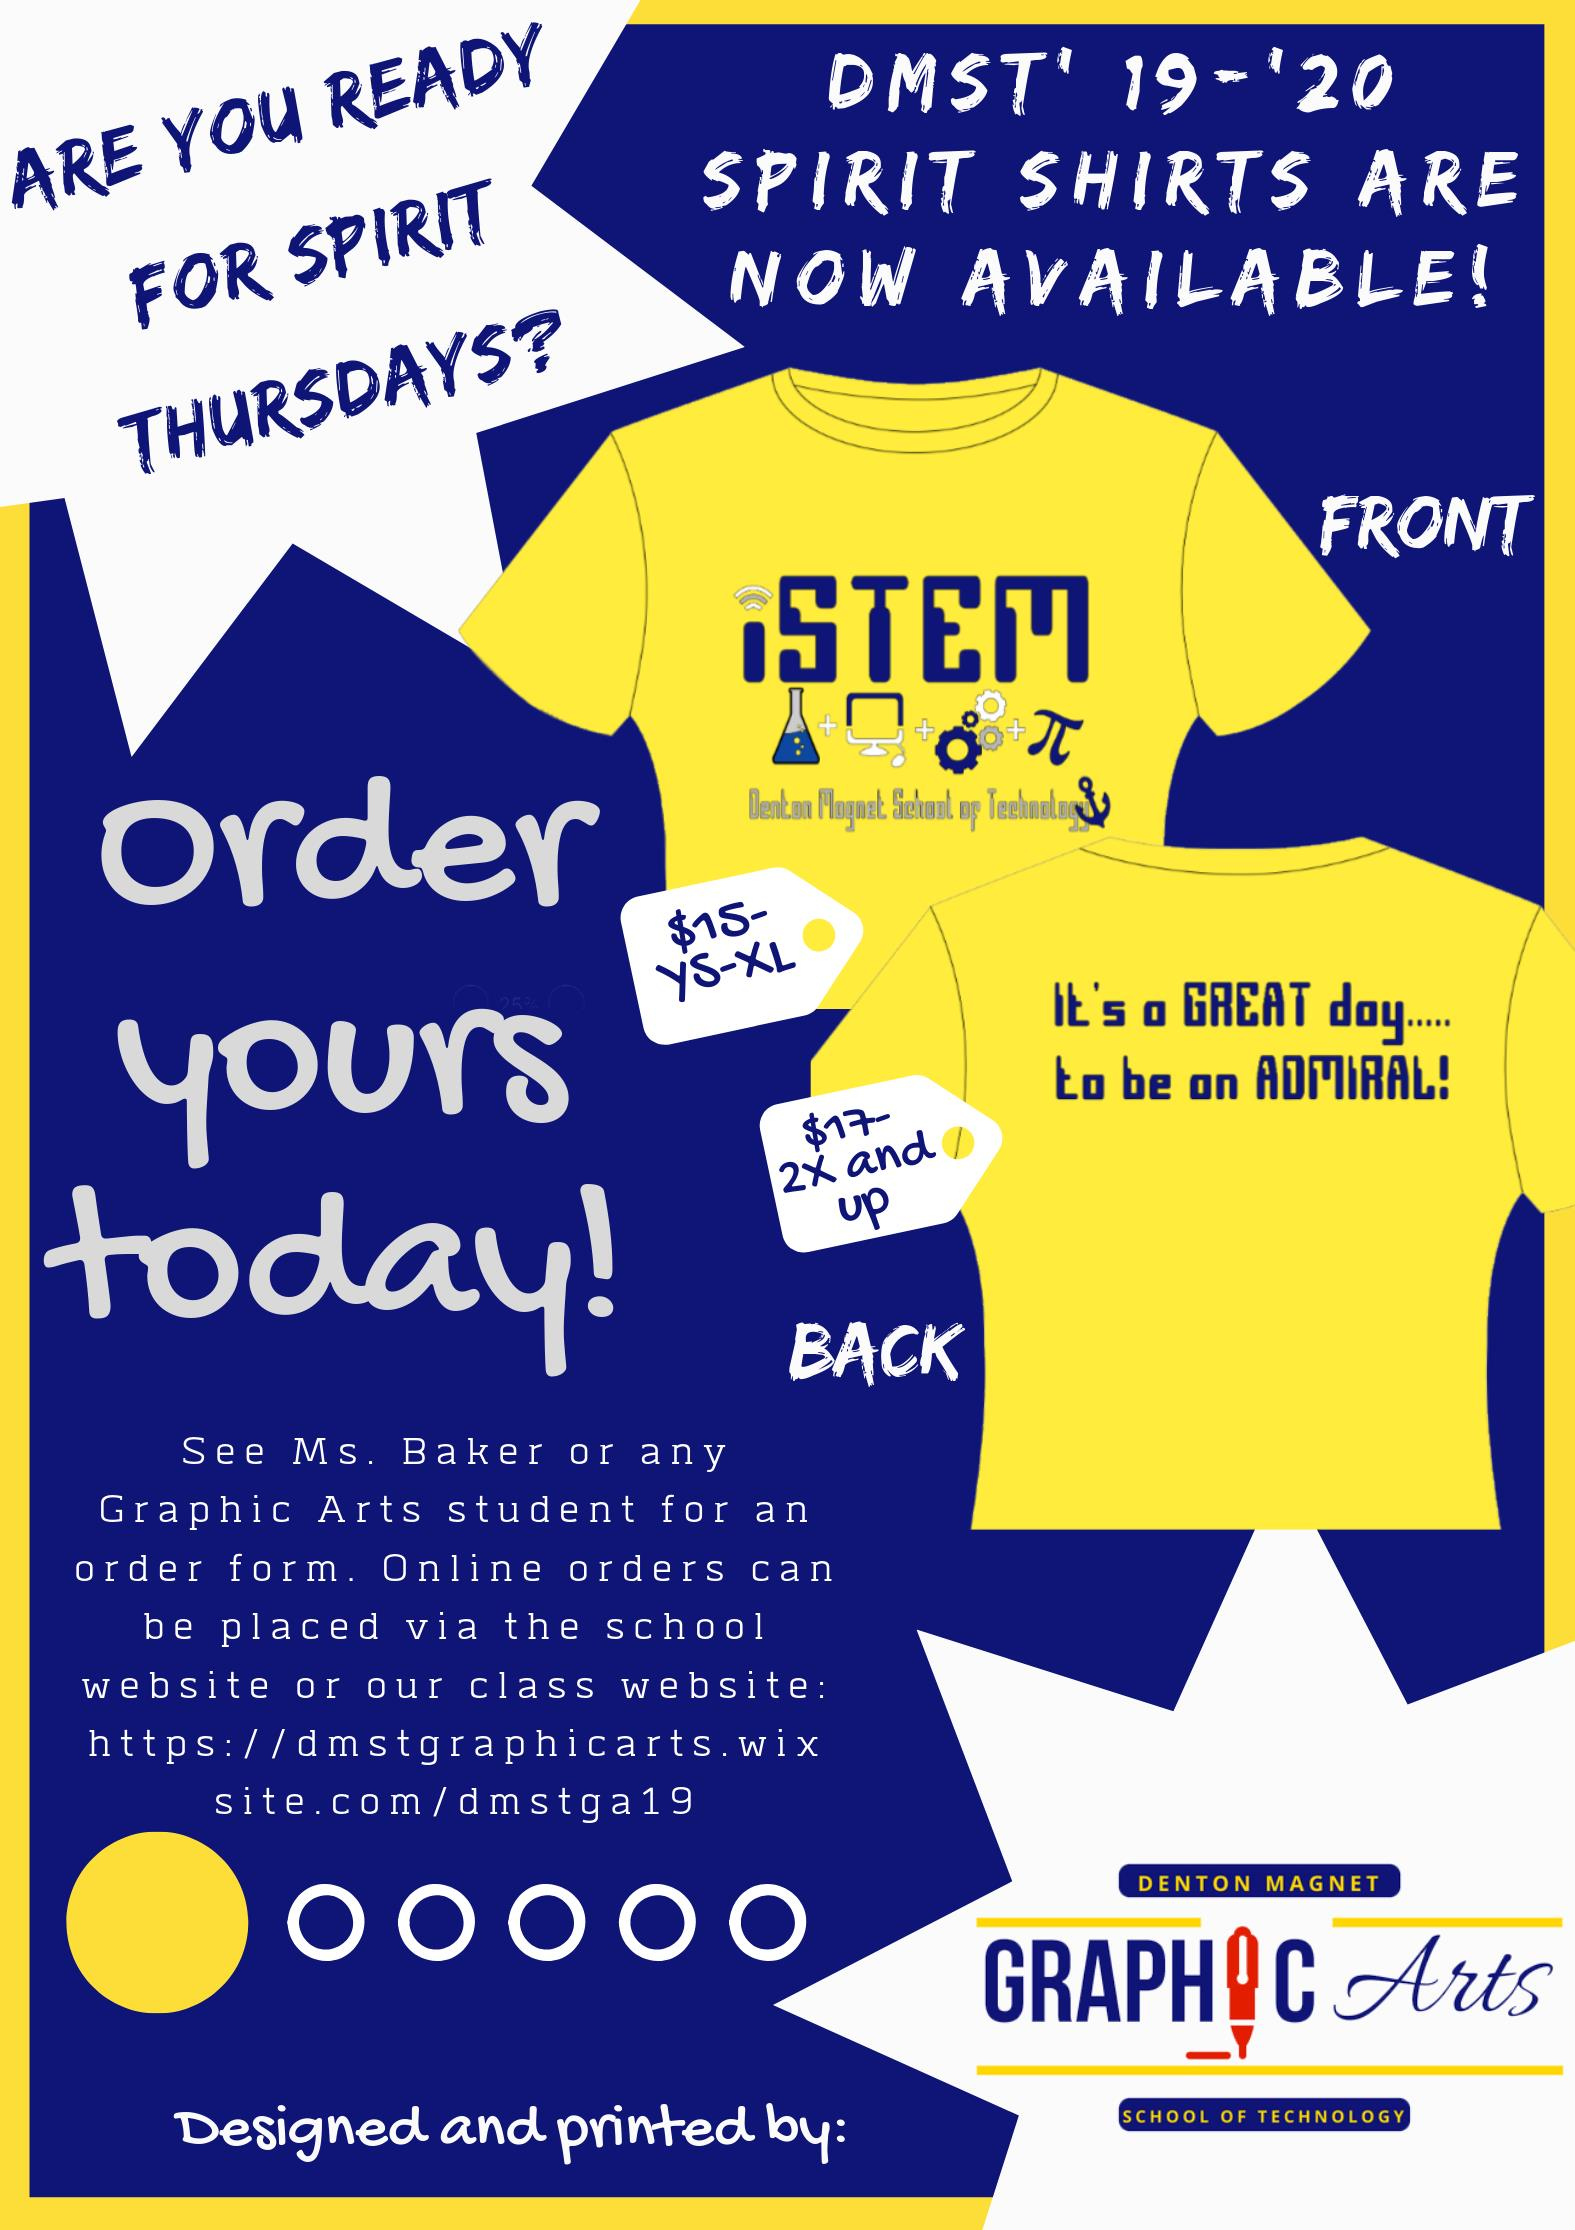 spirit shirt flyer